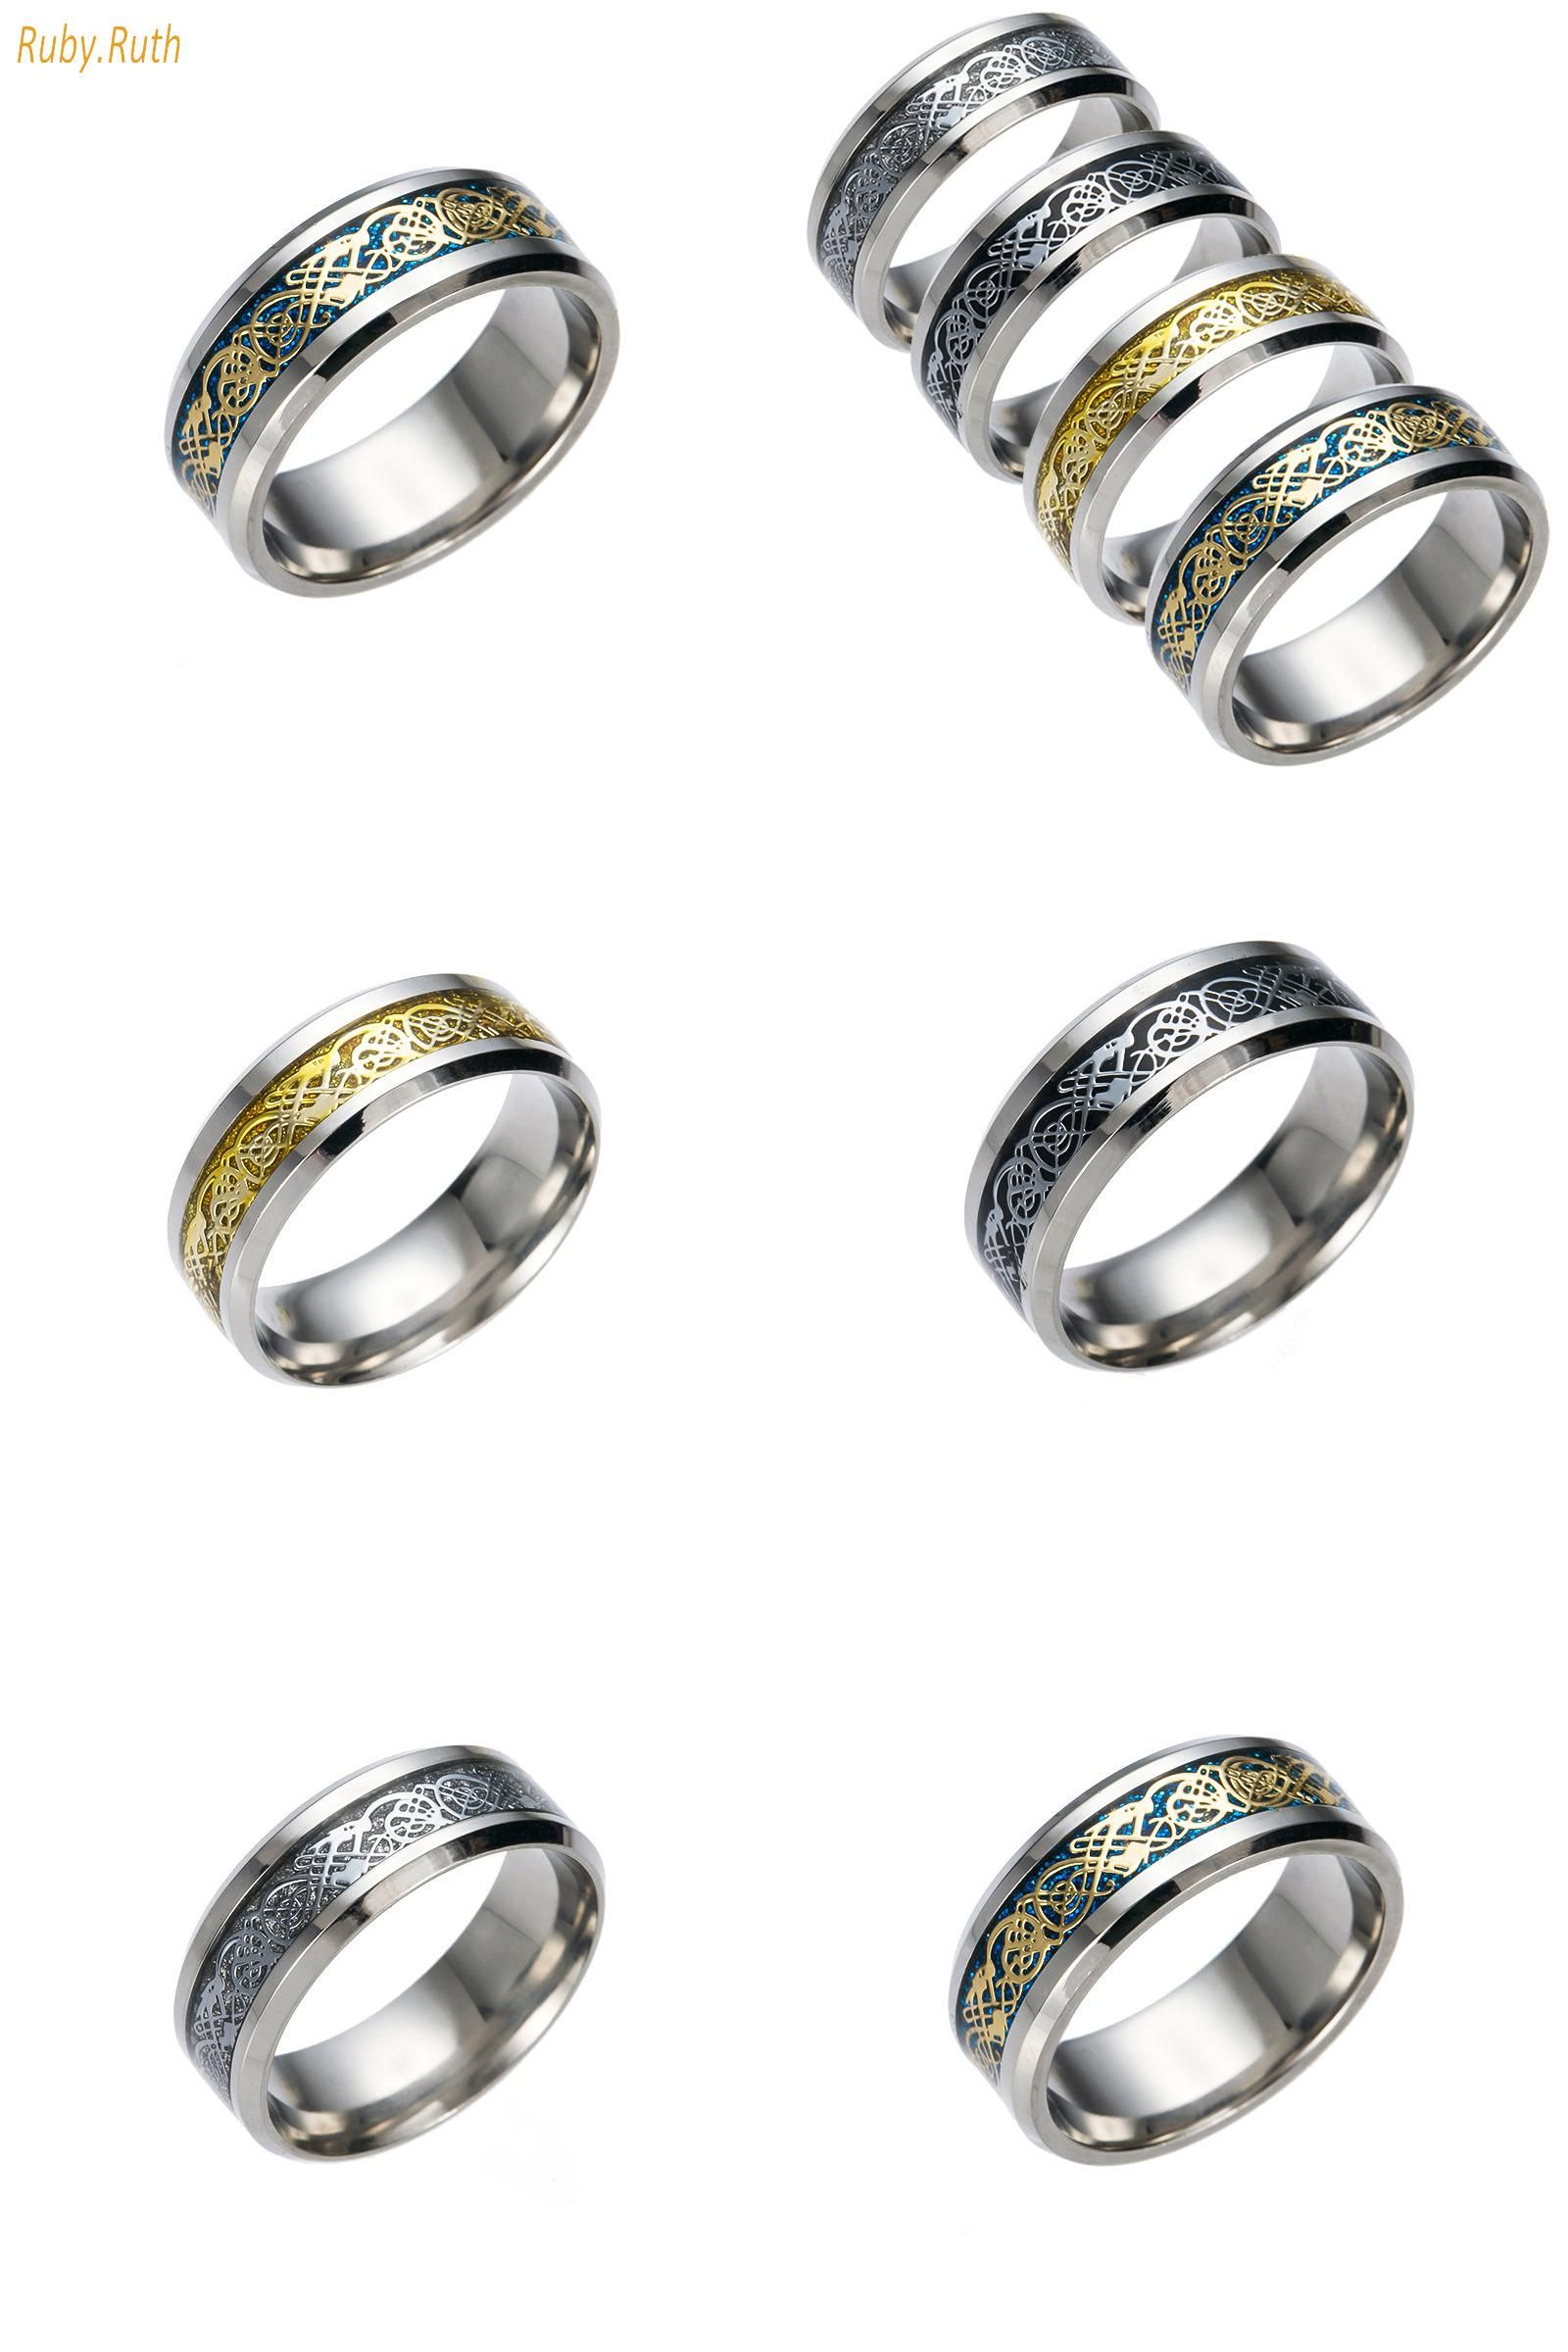 Visit to Buy] 2017 Ring of Power Gold Black The Lord of Rings